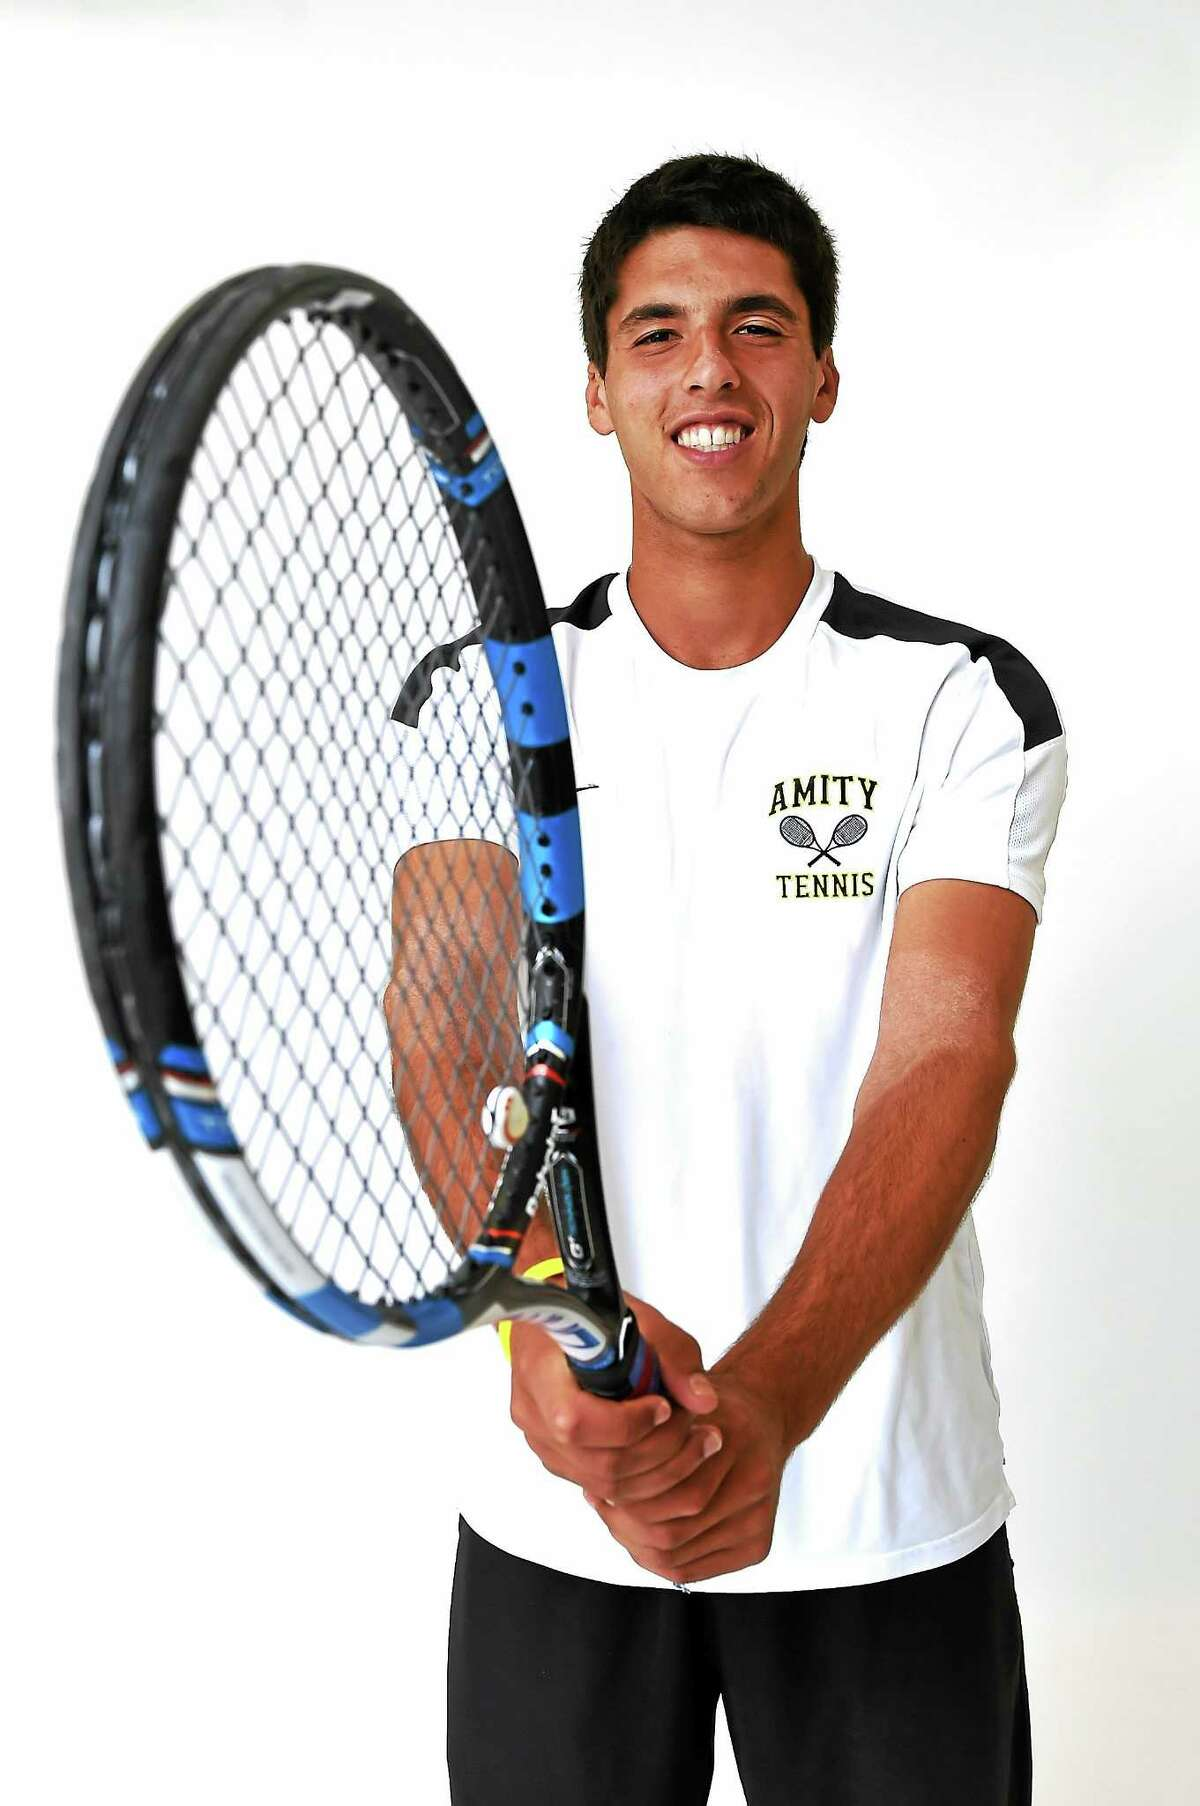 Amity's Jason Seidman had a 3-1 record in singles matches at the USTA's National Team Championships.